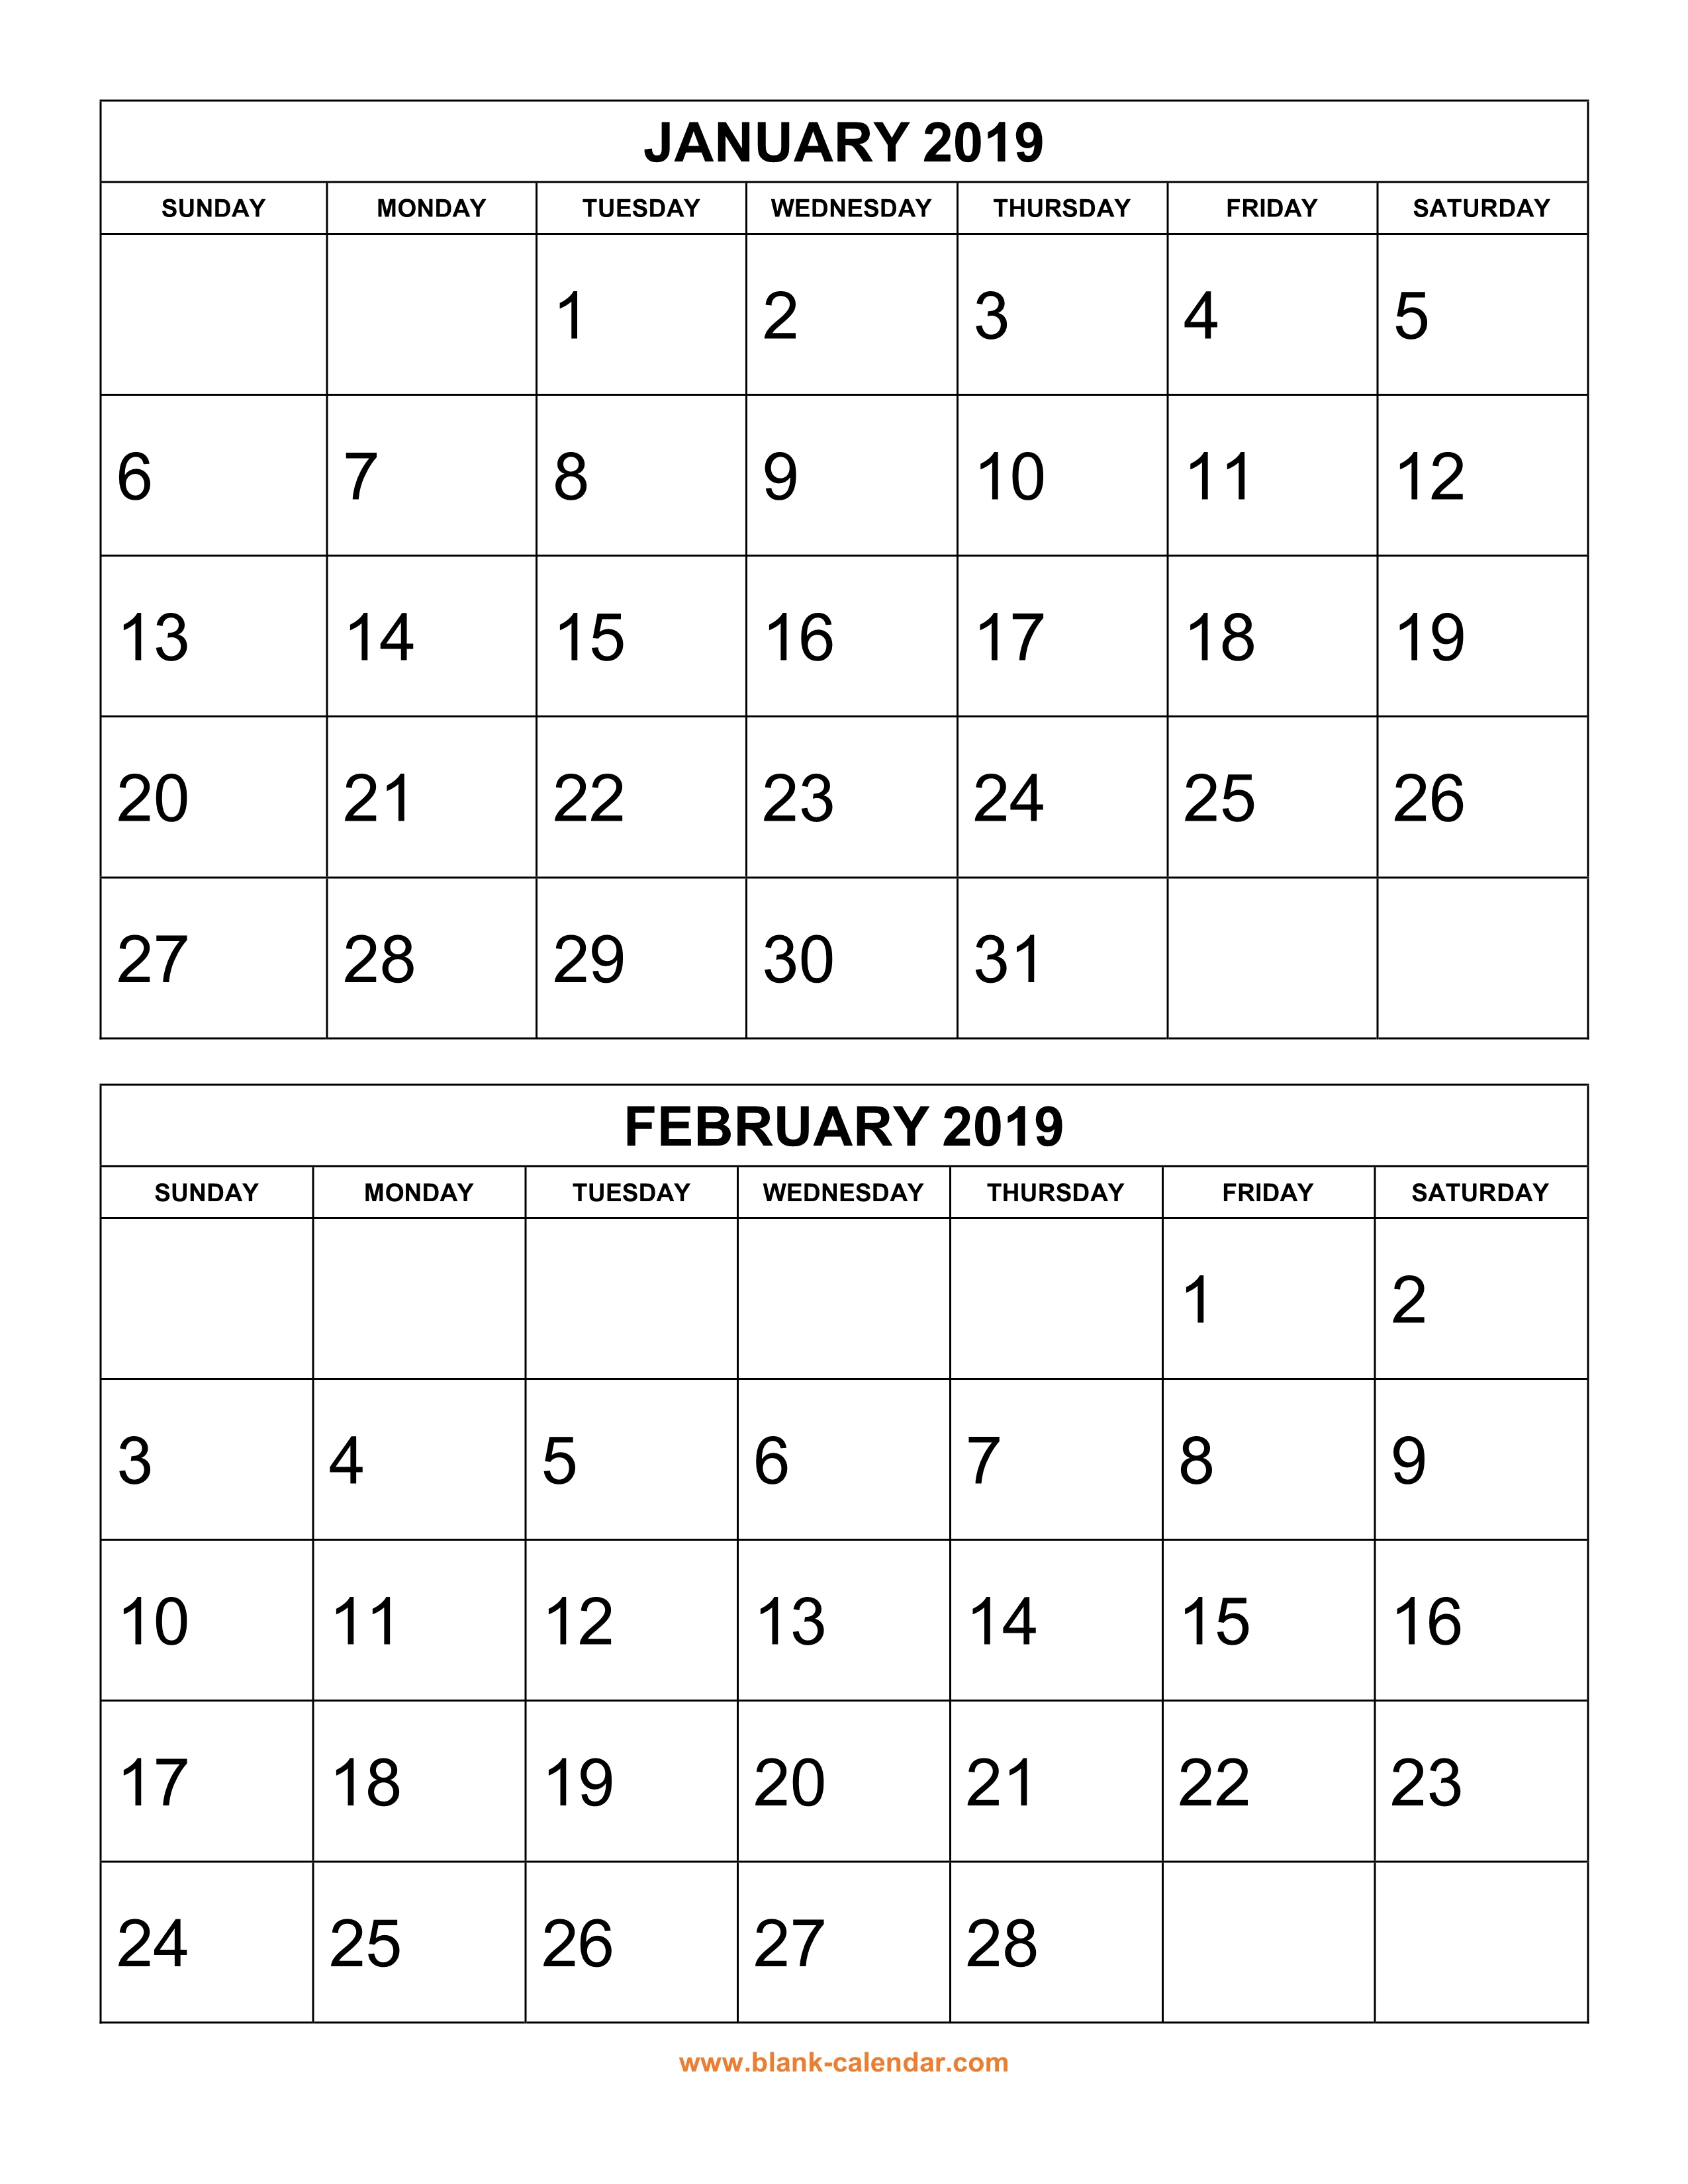 Free Download Printable Calendar 2019, 2 Months Per Page, 6 Pages intended for 3 Month Calendar Template Printable Free